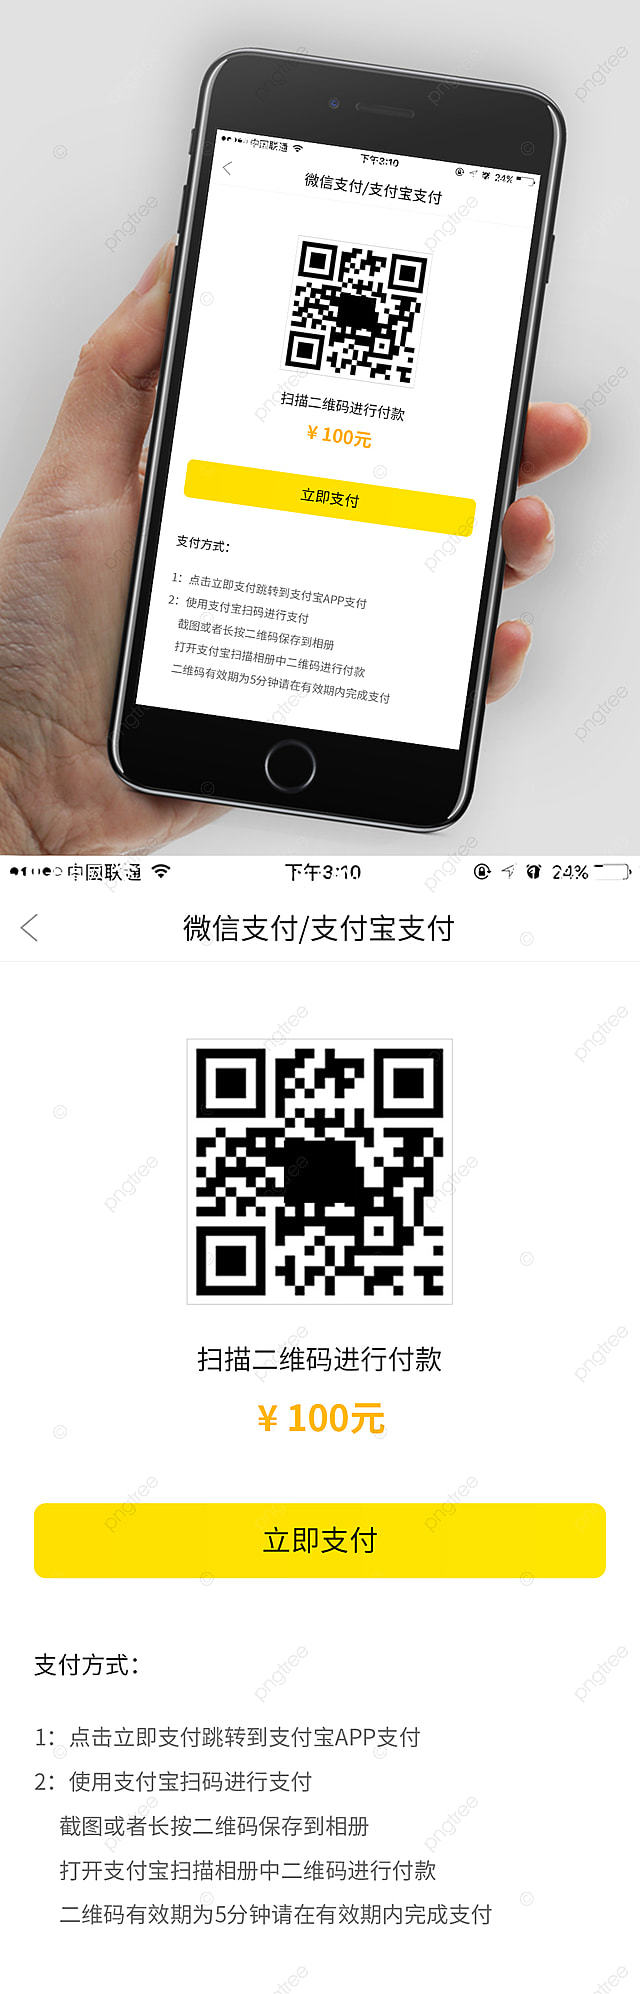 Recharge payment QR code UI design Template for Free Download on Pngtree